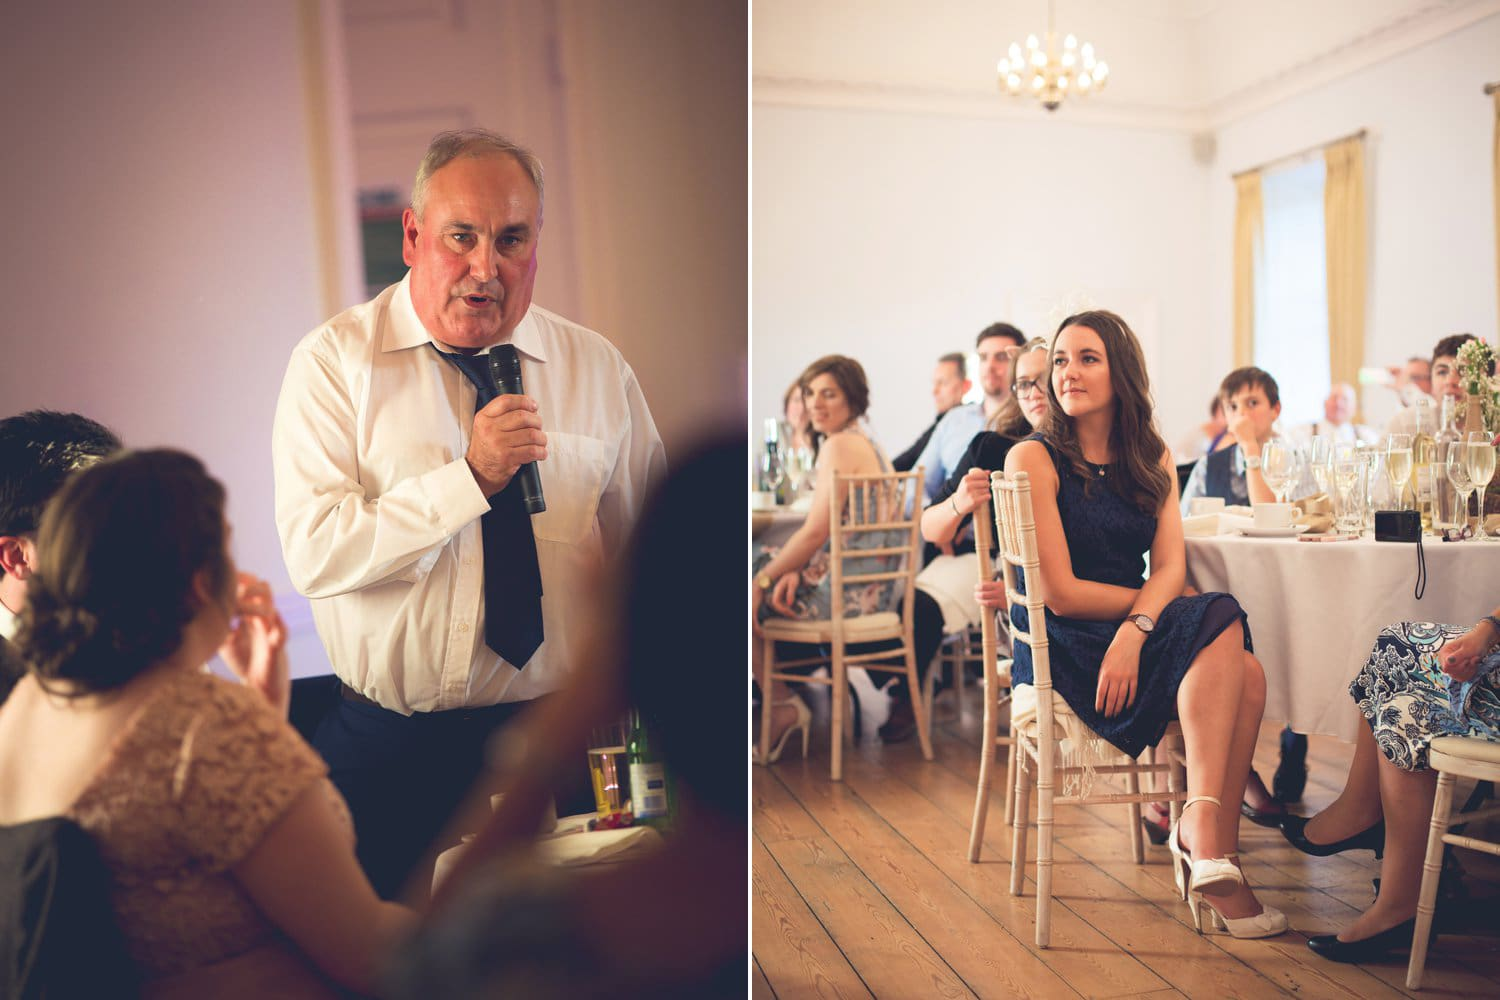 Hexham Abbey Wedding, speeches